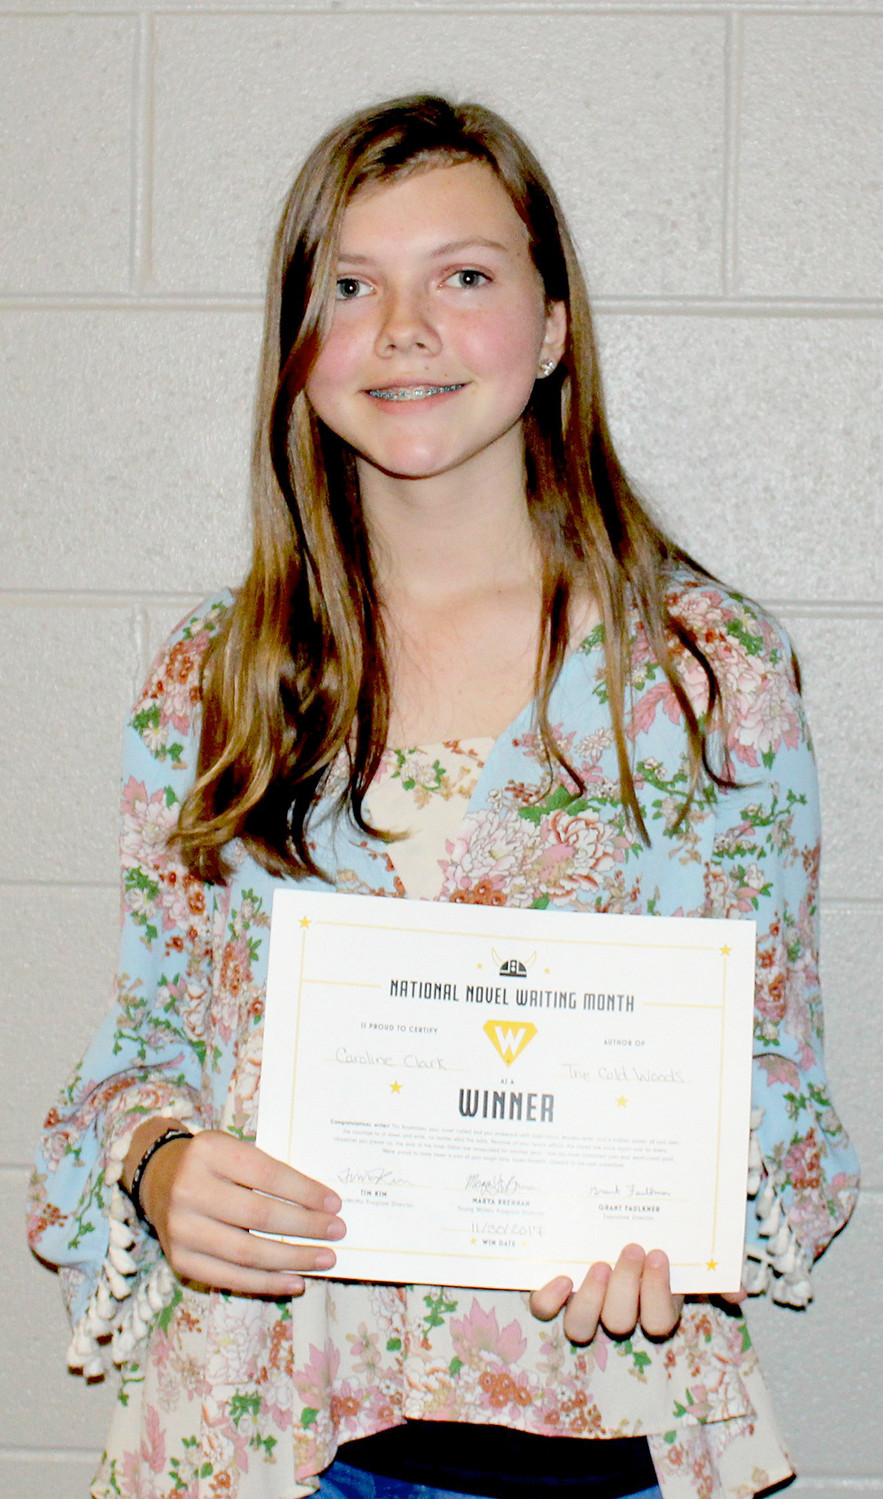 CAROLINE CLARK had the highest word count among the 125 eighth-graders at Cleveland Middle School who participated in National Novel Writing Month. She wrote a murder mystery novel more than 40,000 words long.